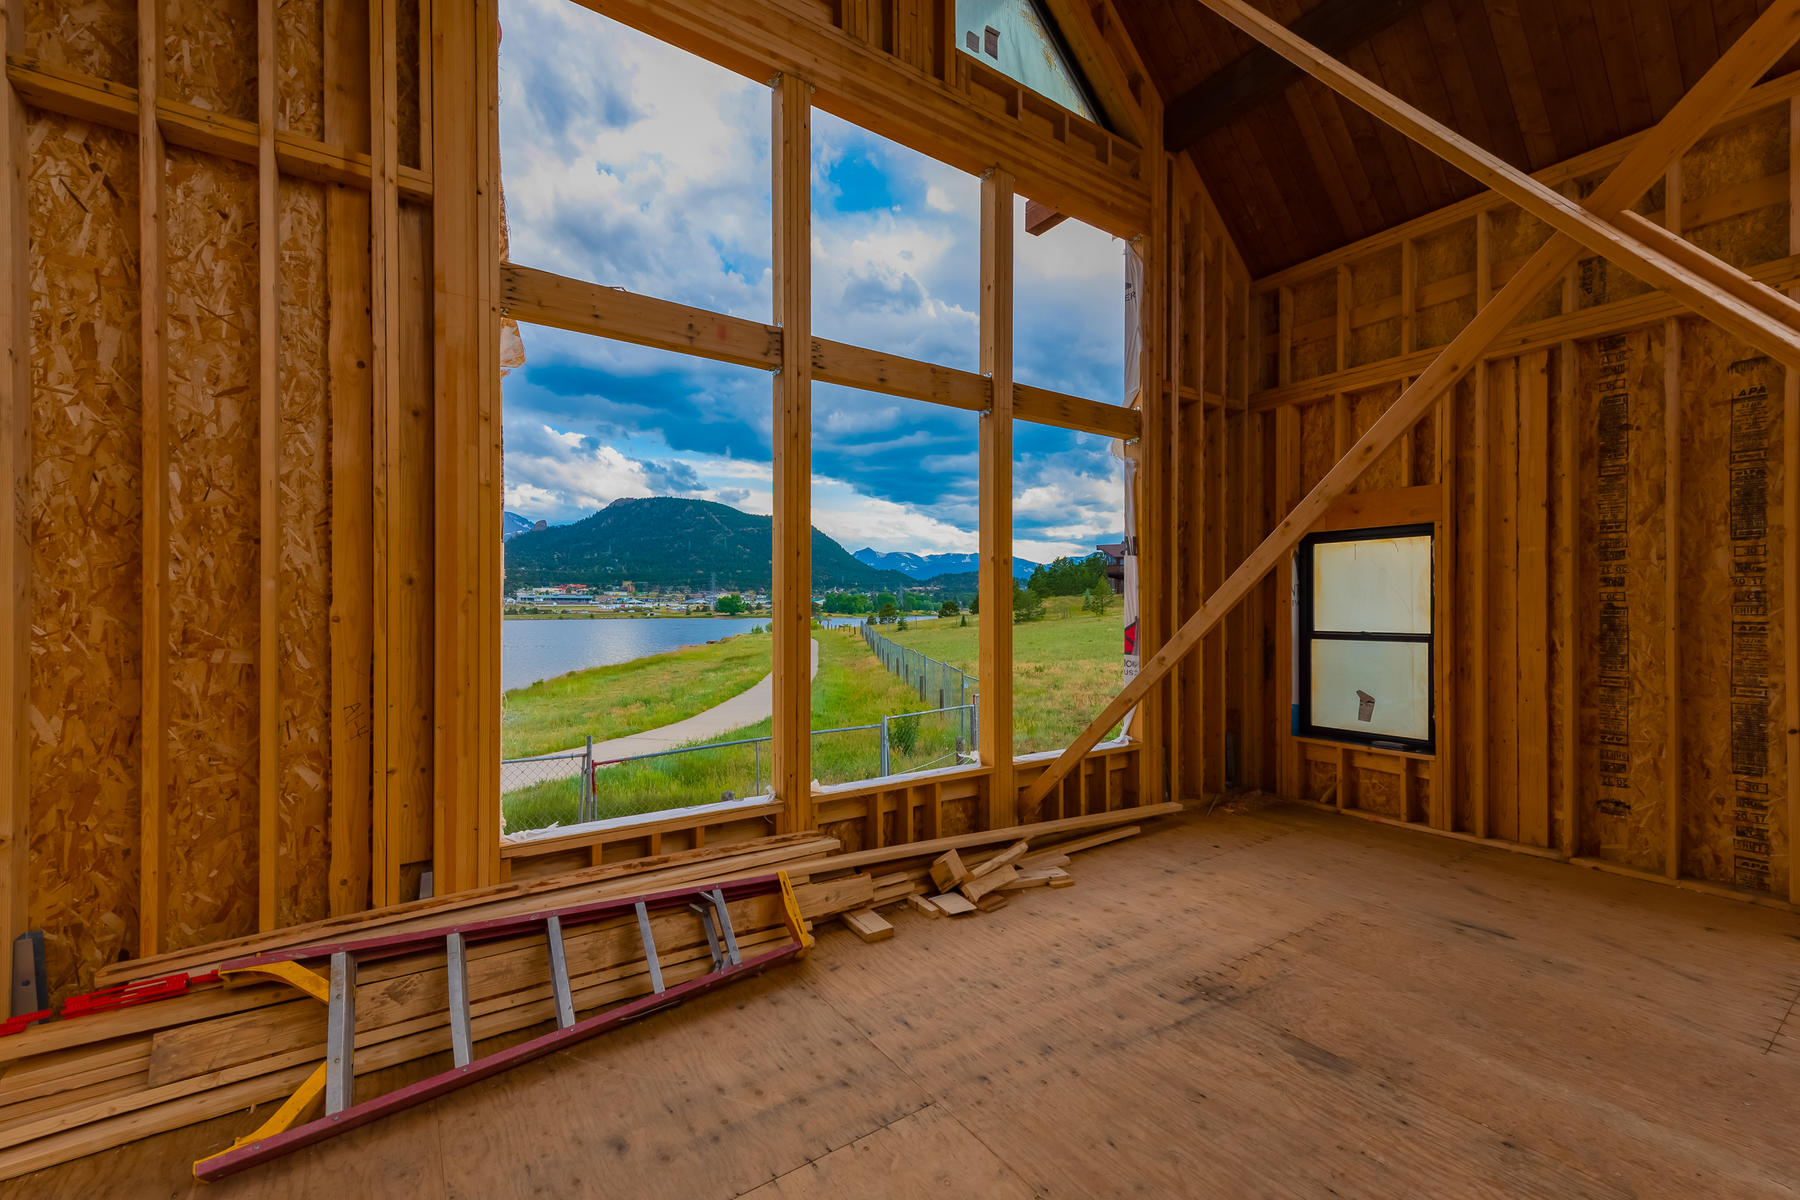 Single Family Home for Active at Exclusive Residential Resort Opportunity 1612 Mountain Village Ln Estes Park, Colorado 80517 United States